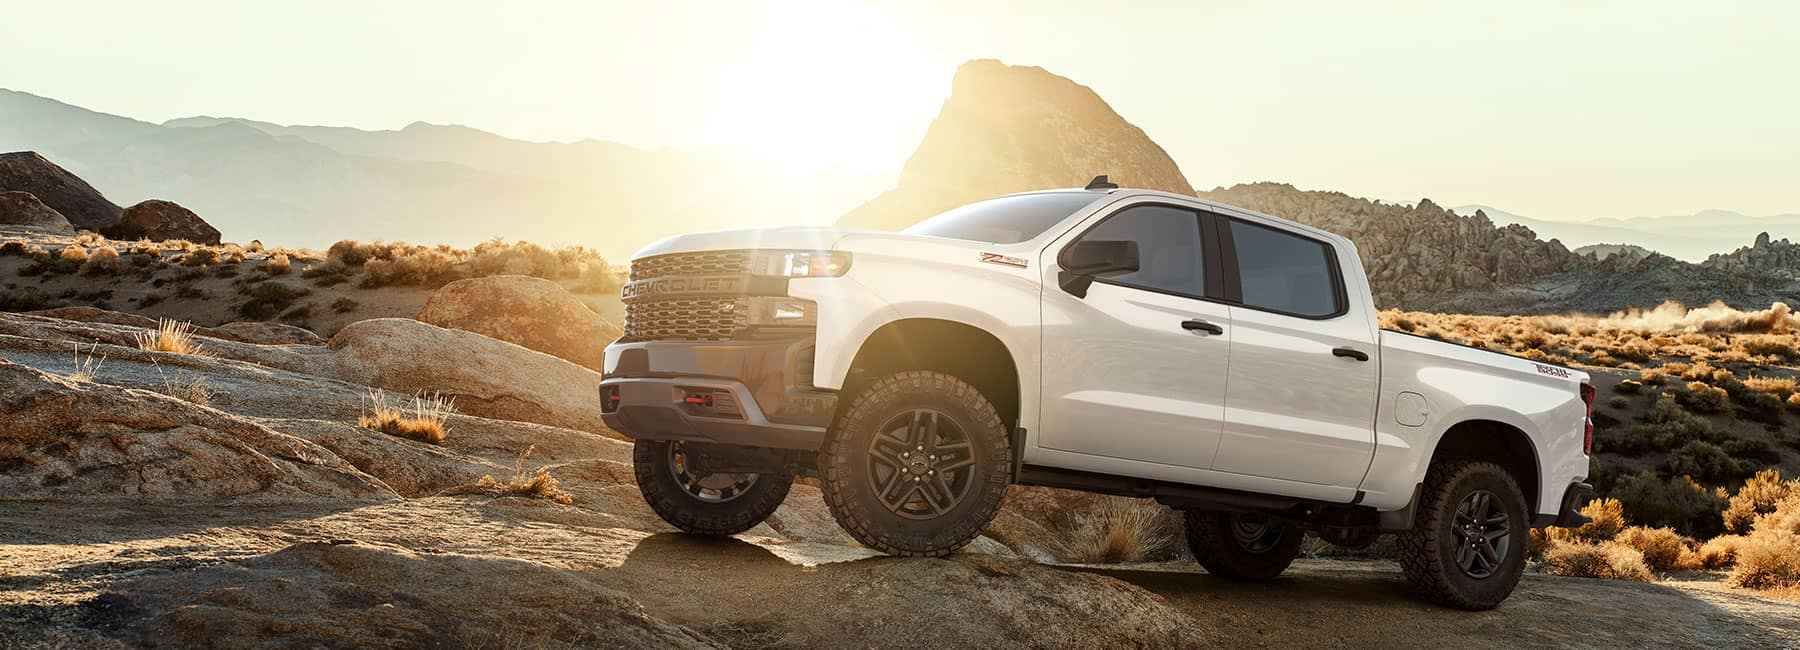 A White Chevy Silverado perched atop a boulder with the sun rising in the background